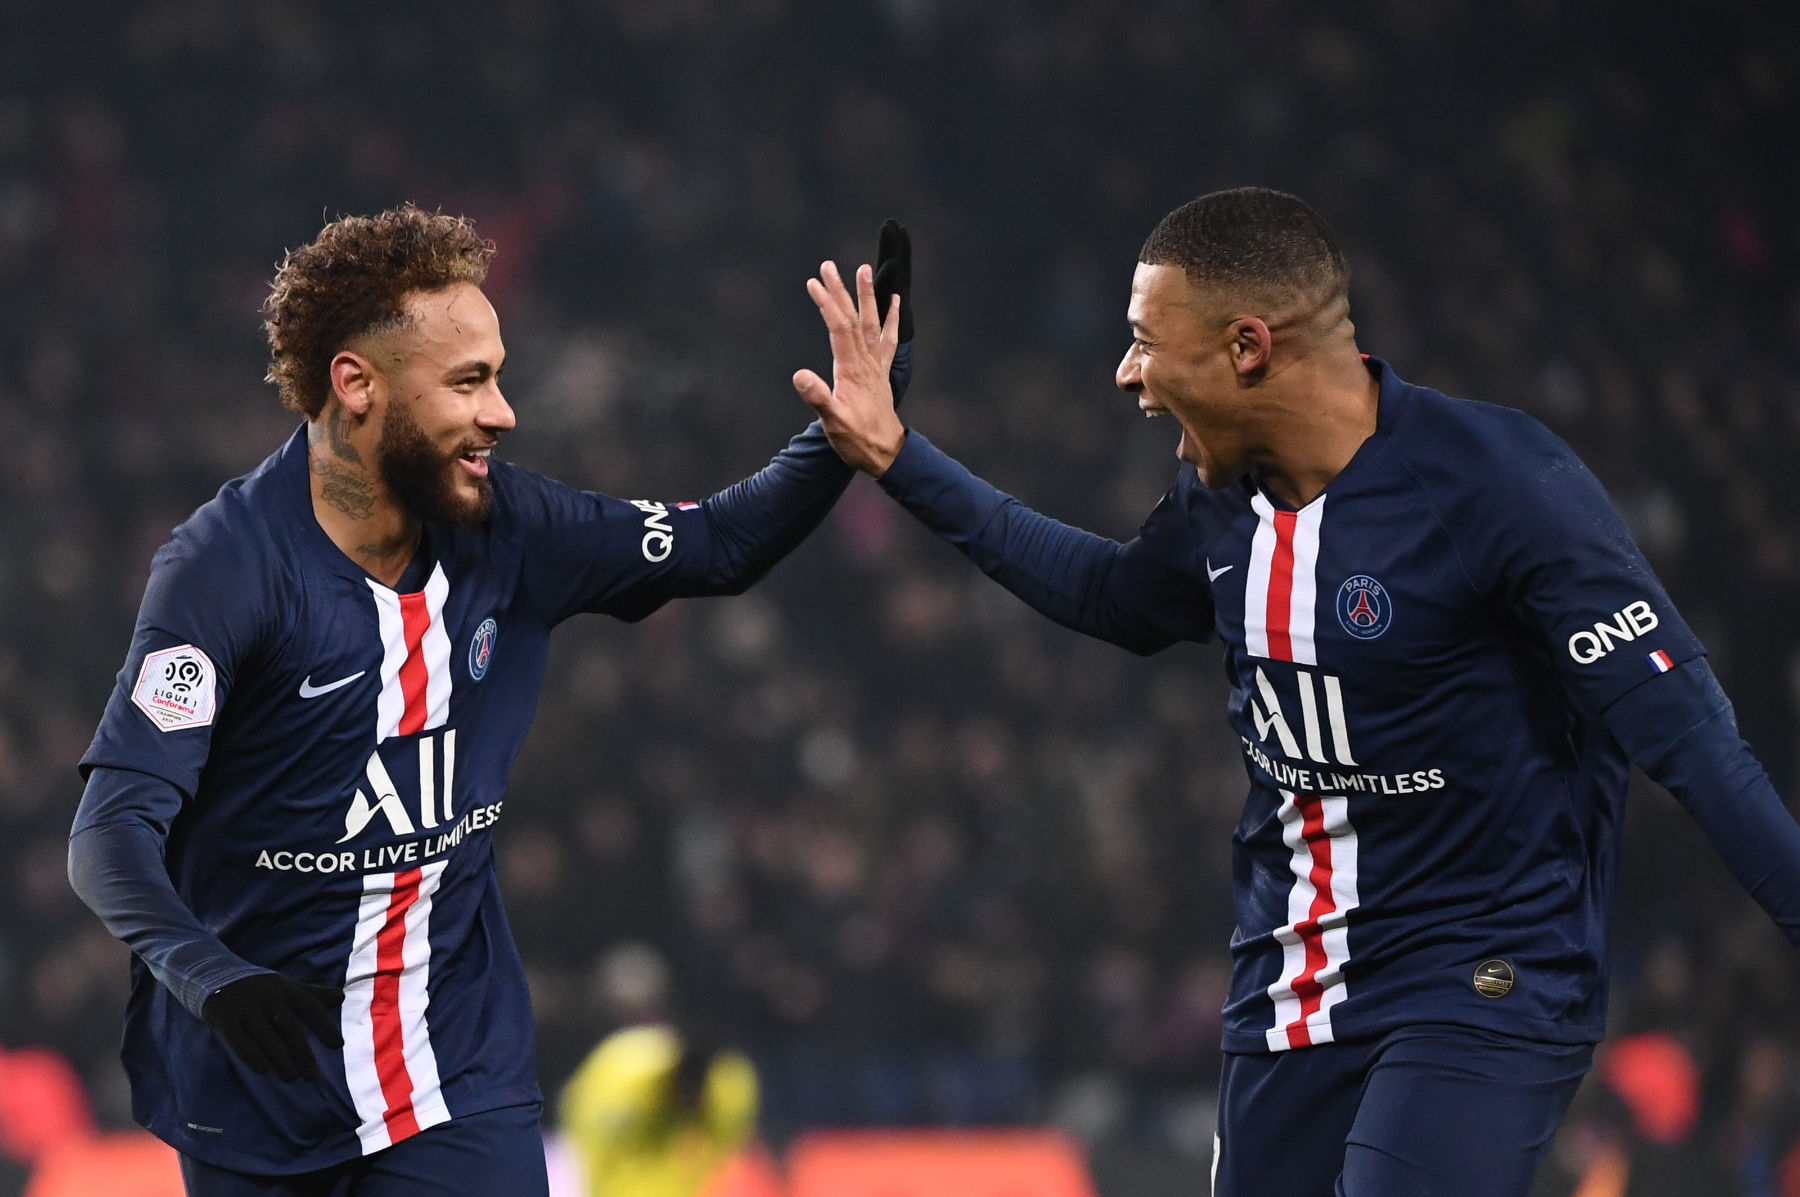 The 6 Clubs Who Are Interested in Signing Mbappé and Neymar - PSG Talk